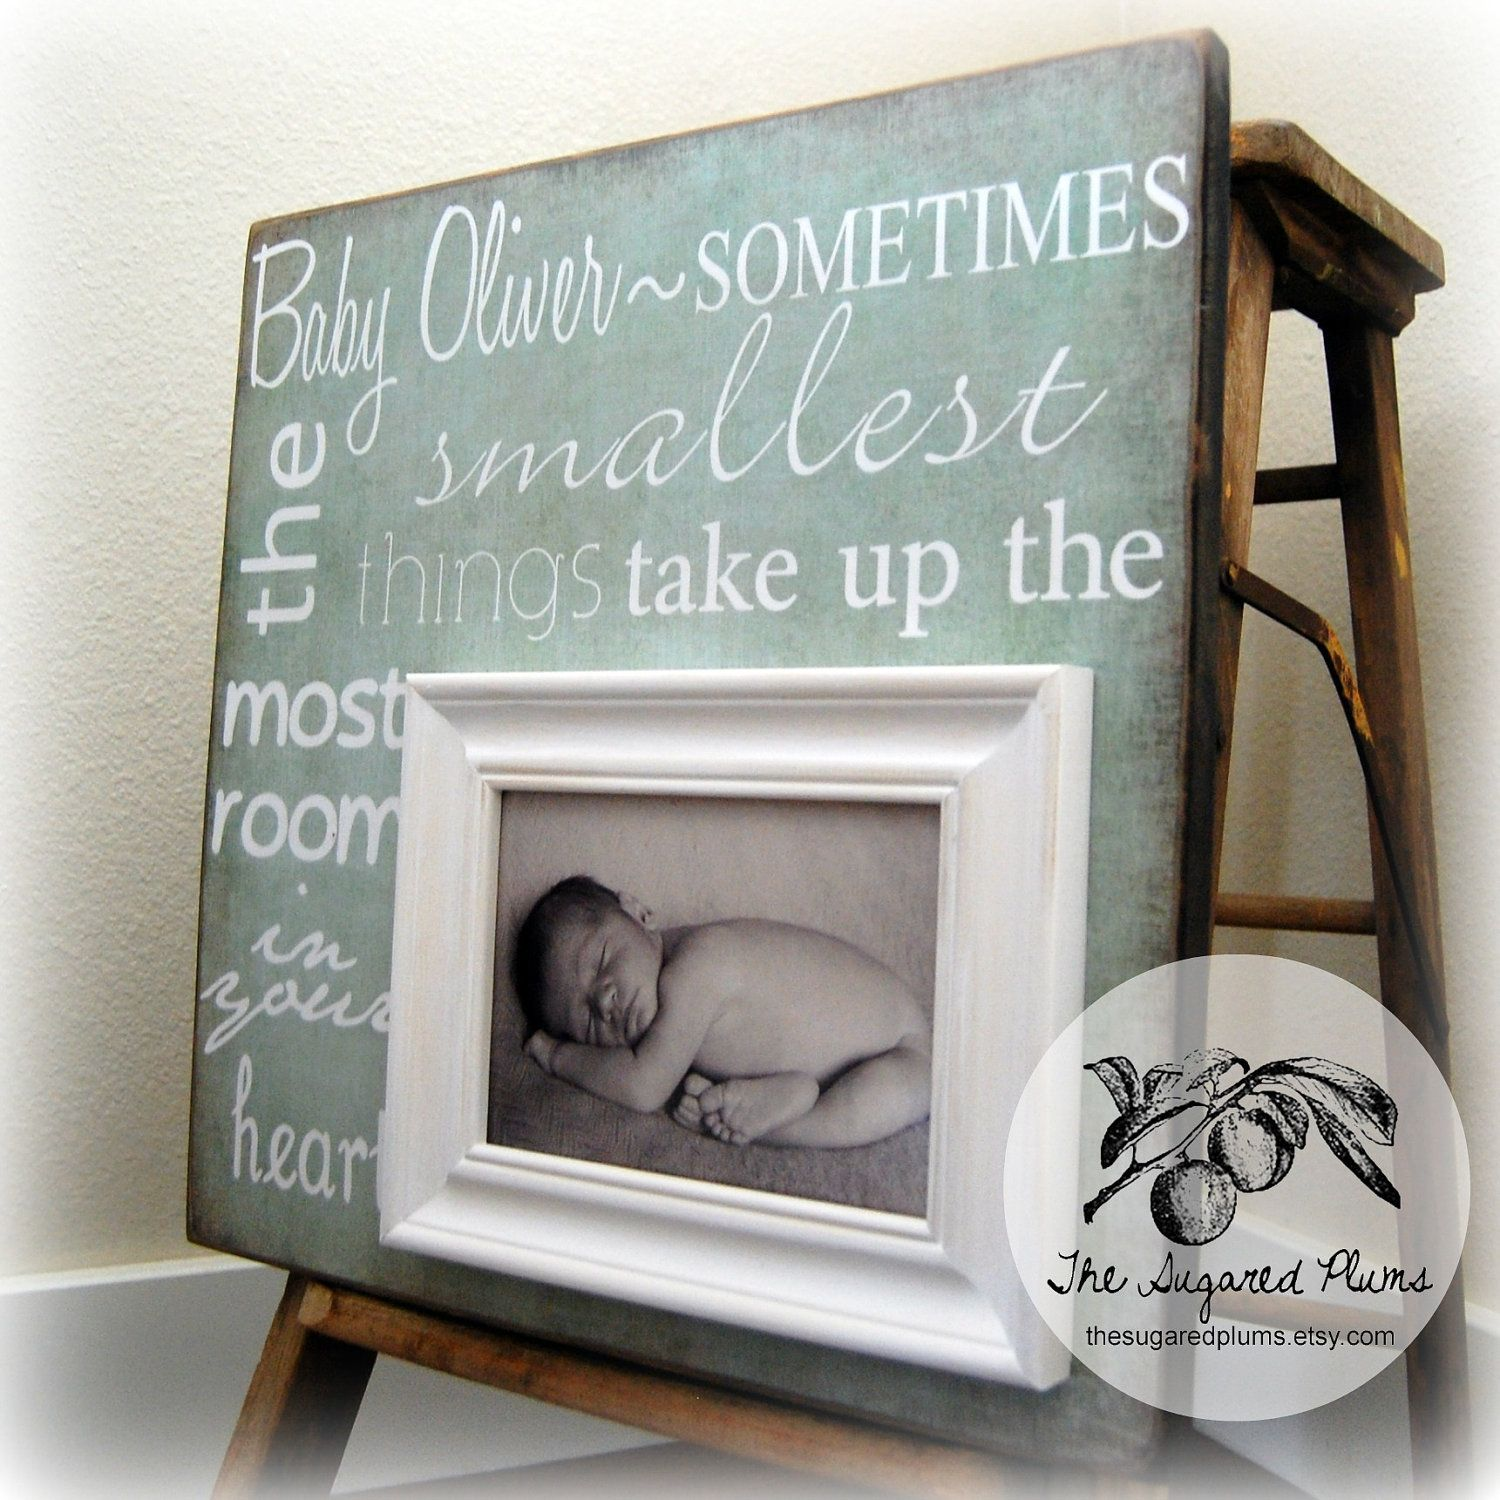 Baby Picture Frame Personalized 16x16 SOMETIMES The SMALLEST THINGS Baptism Christening First Birthday Gift Godparents New 7500 Via Etsy